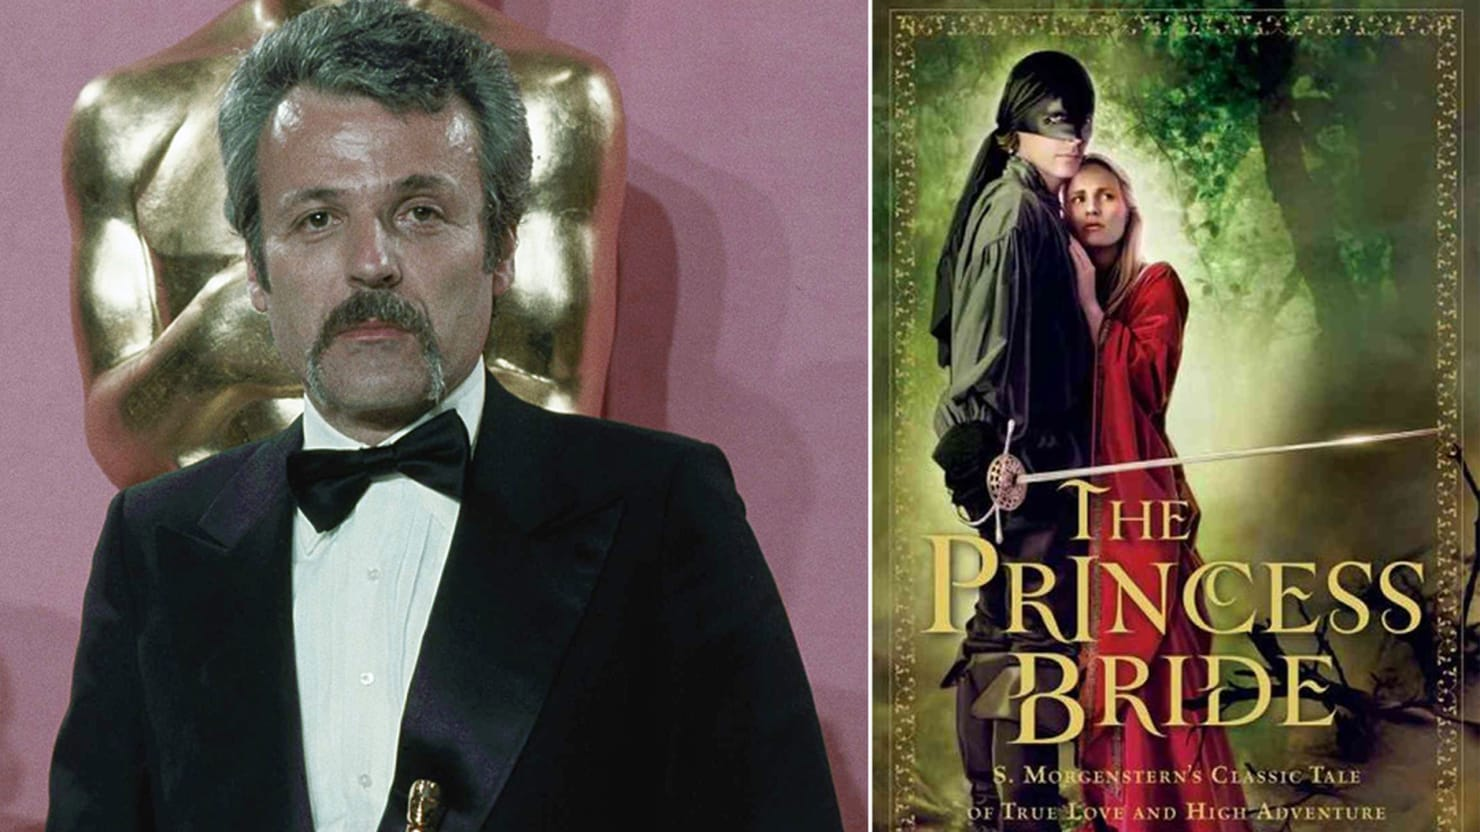 american dreams the princess bride by william goldman why did the princess bride captivate america in the year of watergate nathaniel rich re s william goldman s classic and finds it grippingly